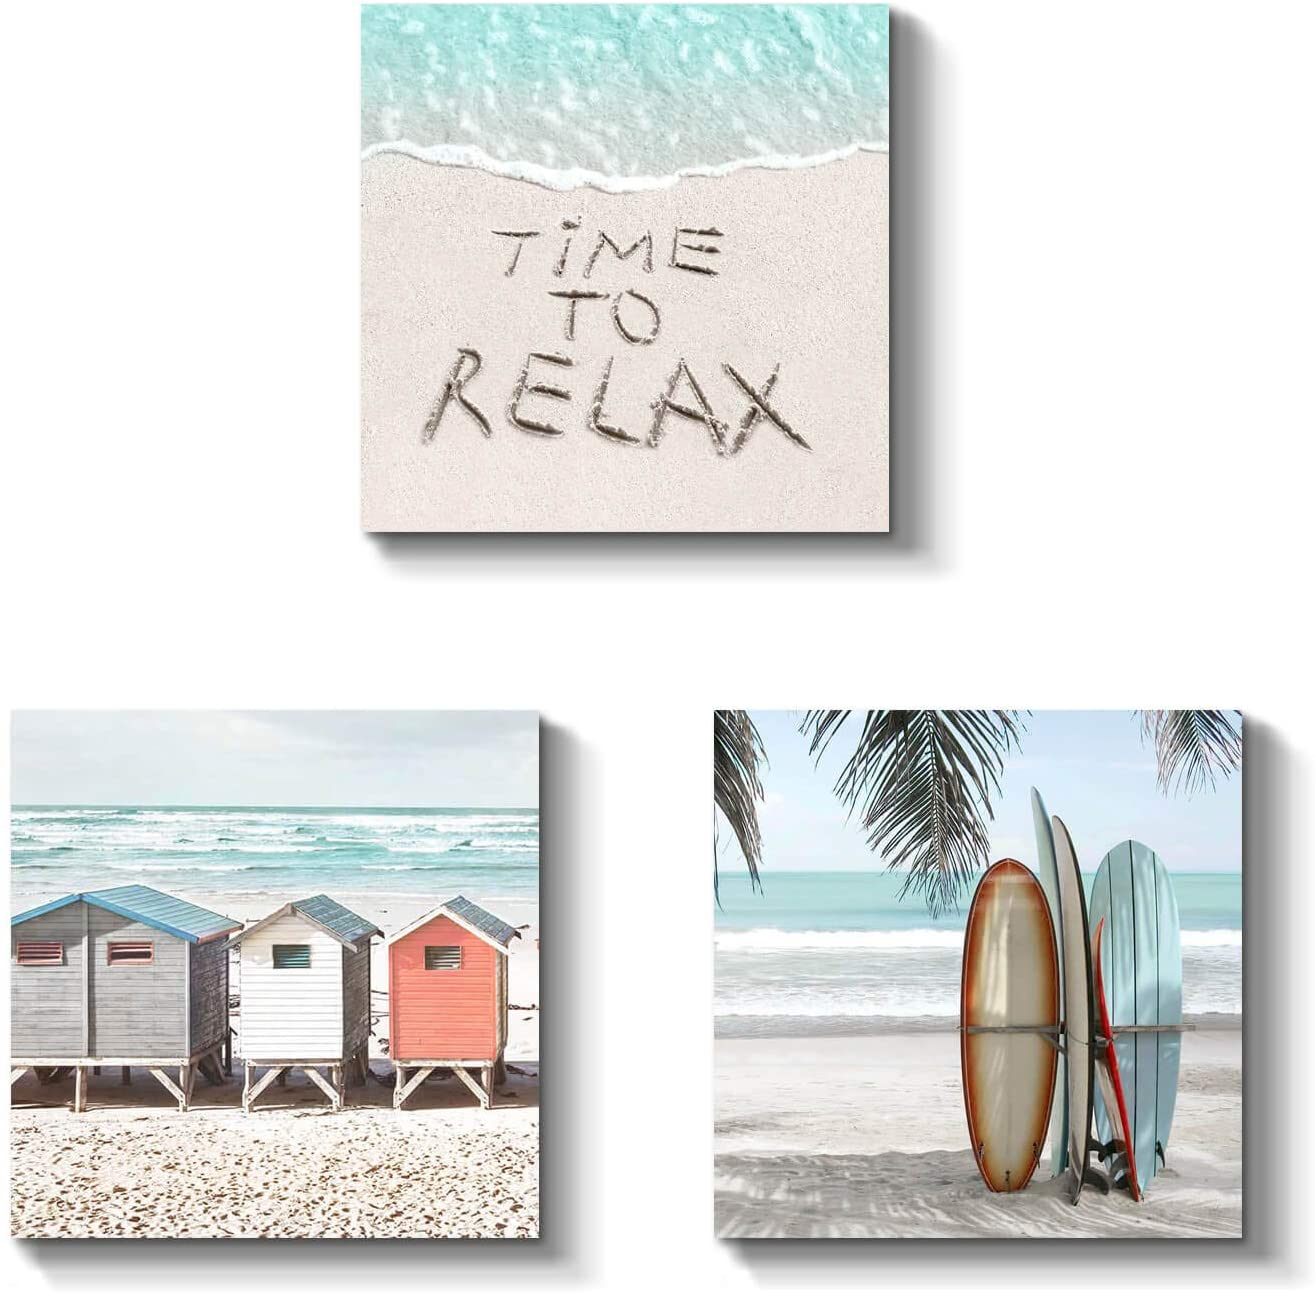 Beach Coastal Canvas Wall Art: Seashore Artwork Surfboard Picture Seascape Painting for Living Room (12 x 12 x 3 Panels)